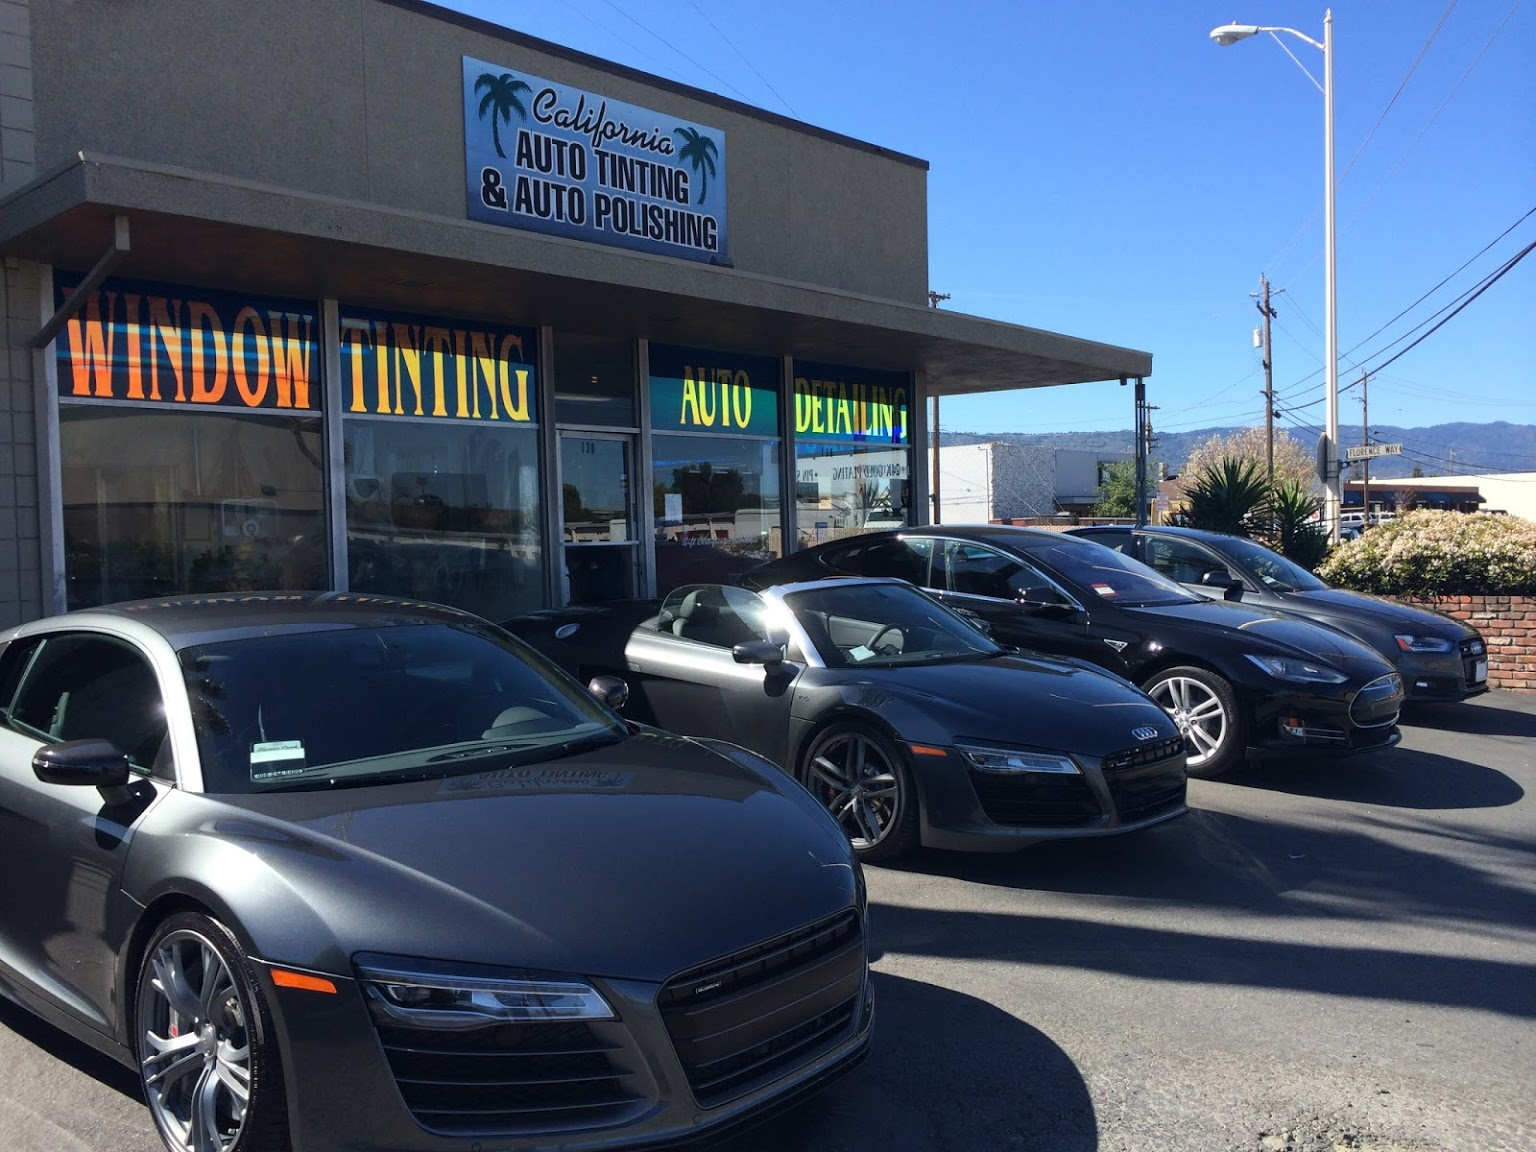 130 E. Sunnyoaks, California Auto Tinting and Polishing